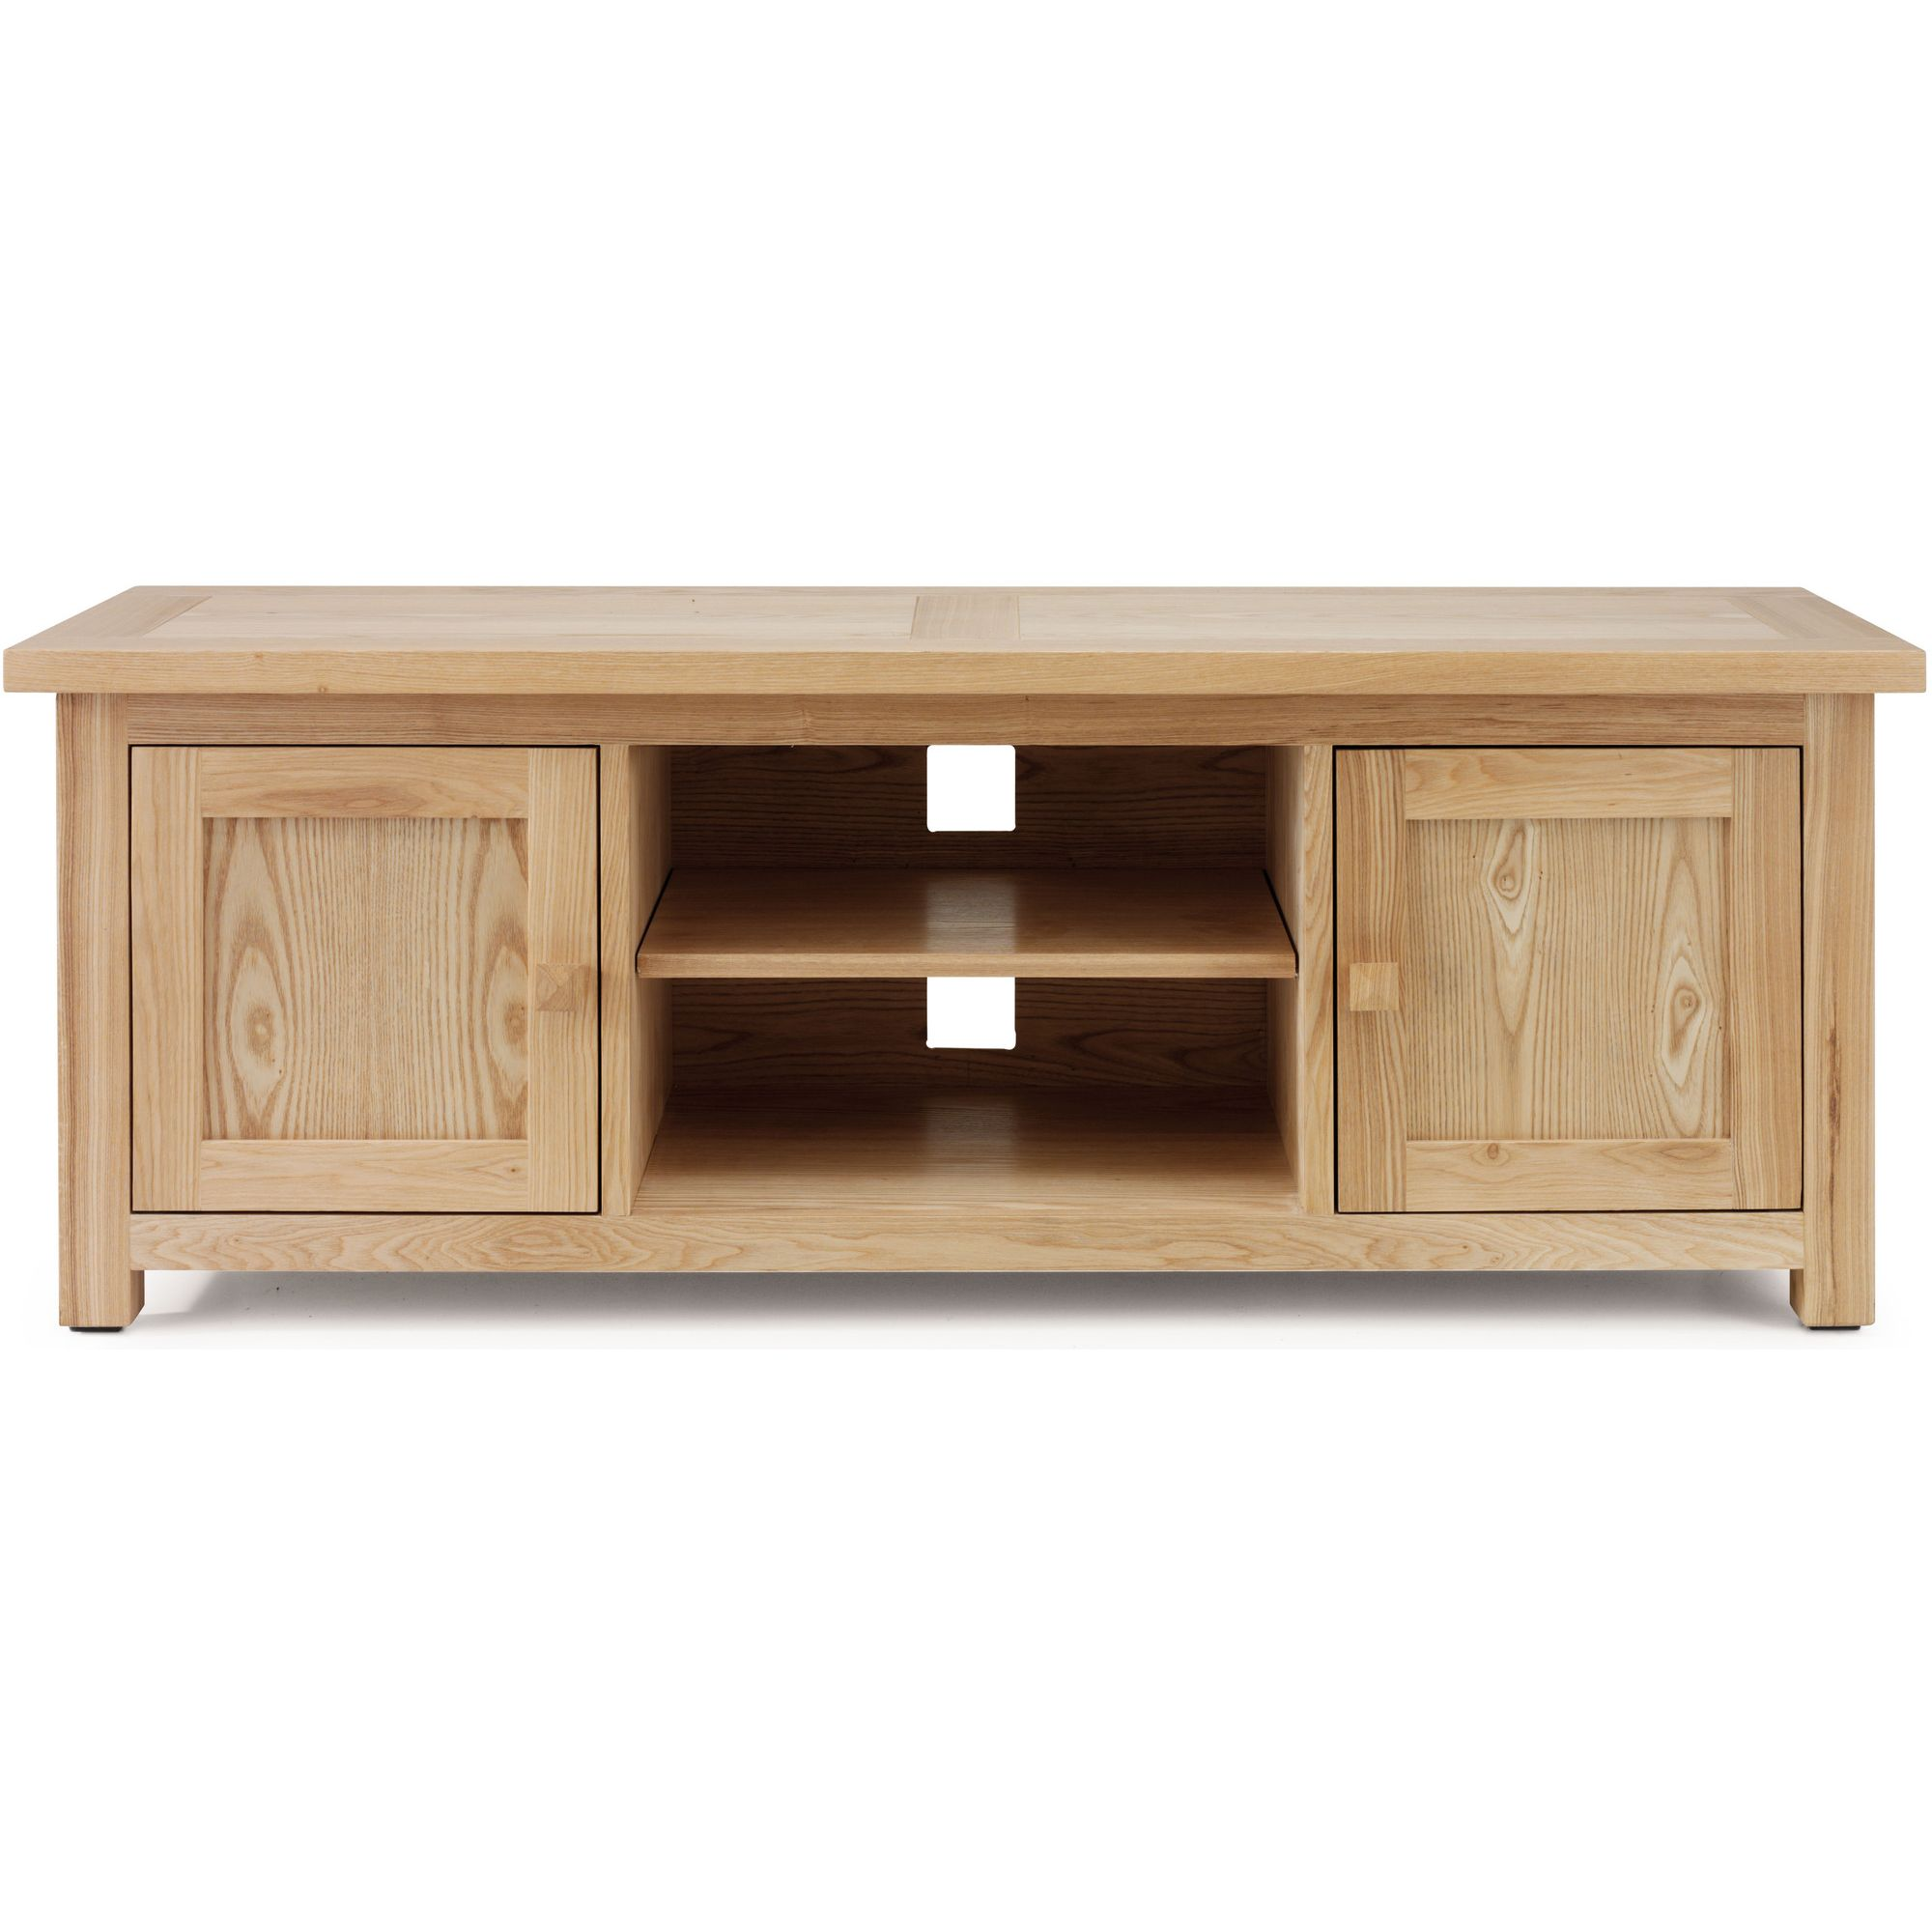 Originals Portland TV Cabinet at Tesco Direct